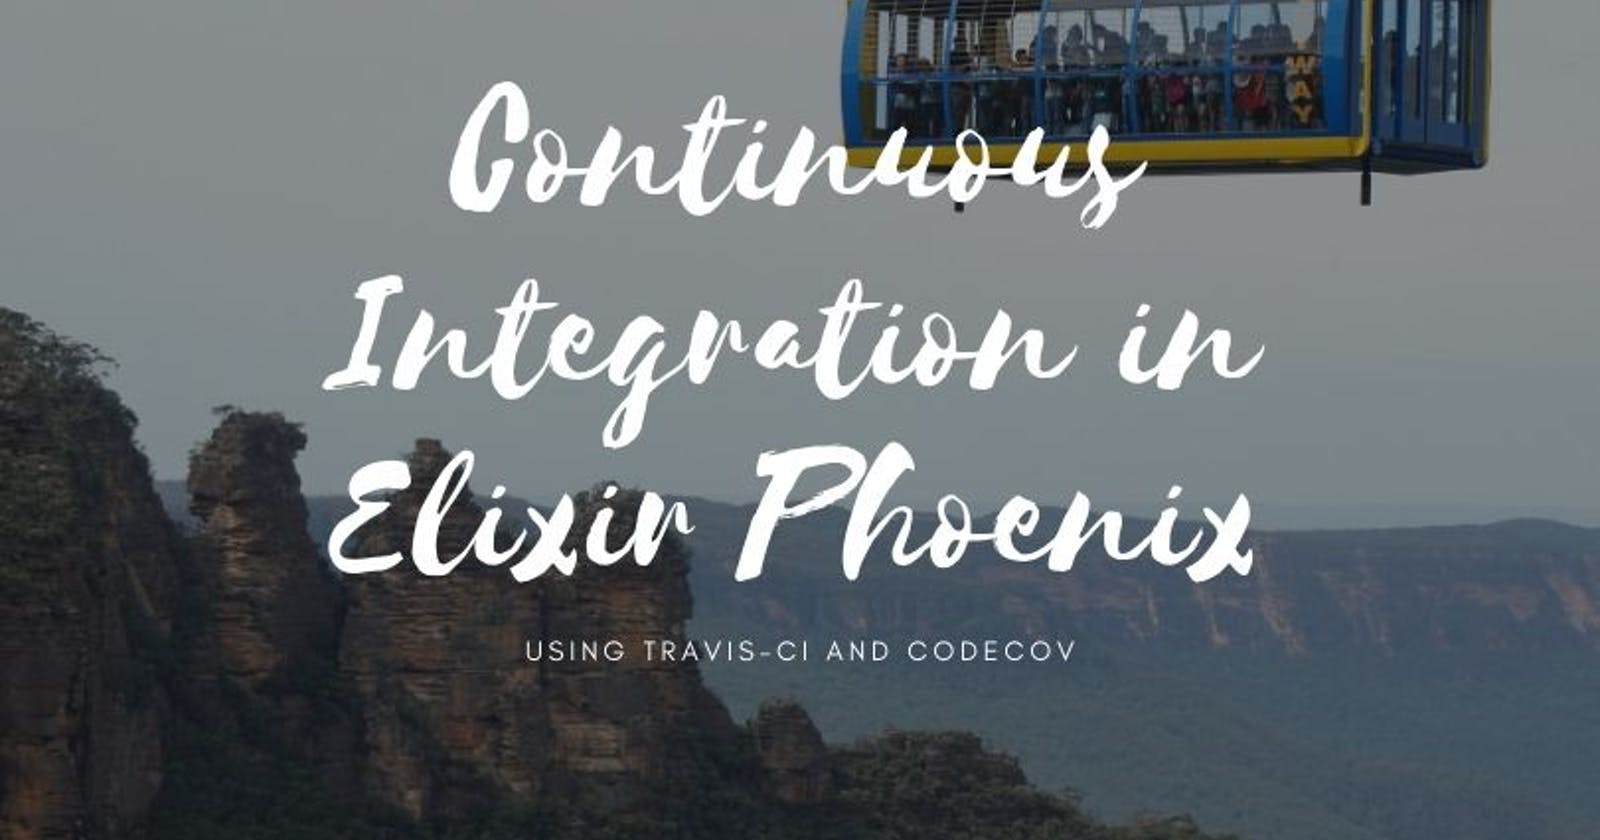 Continuous Integration in Elixir Phoenix with Travis-CI and Codecov